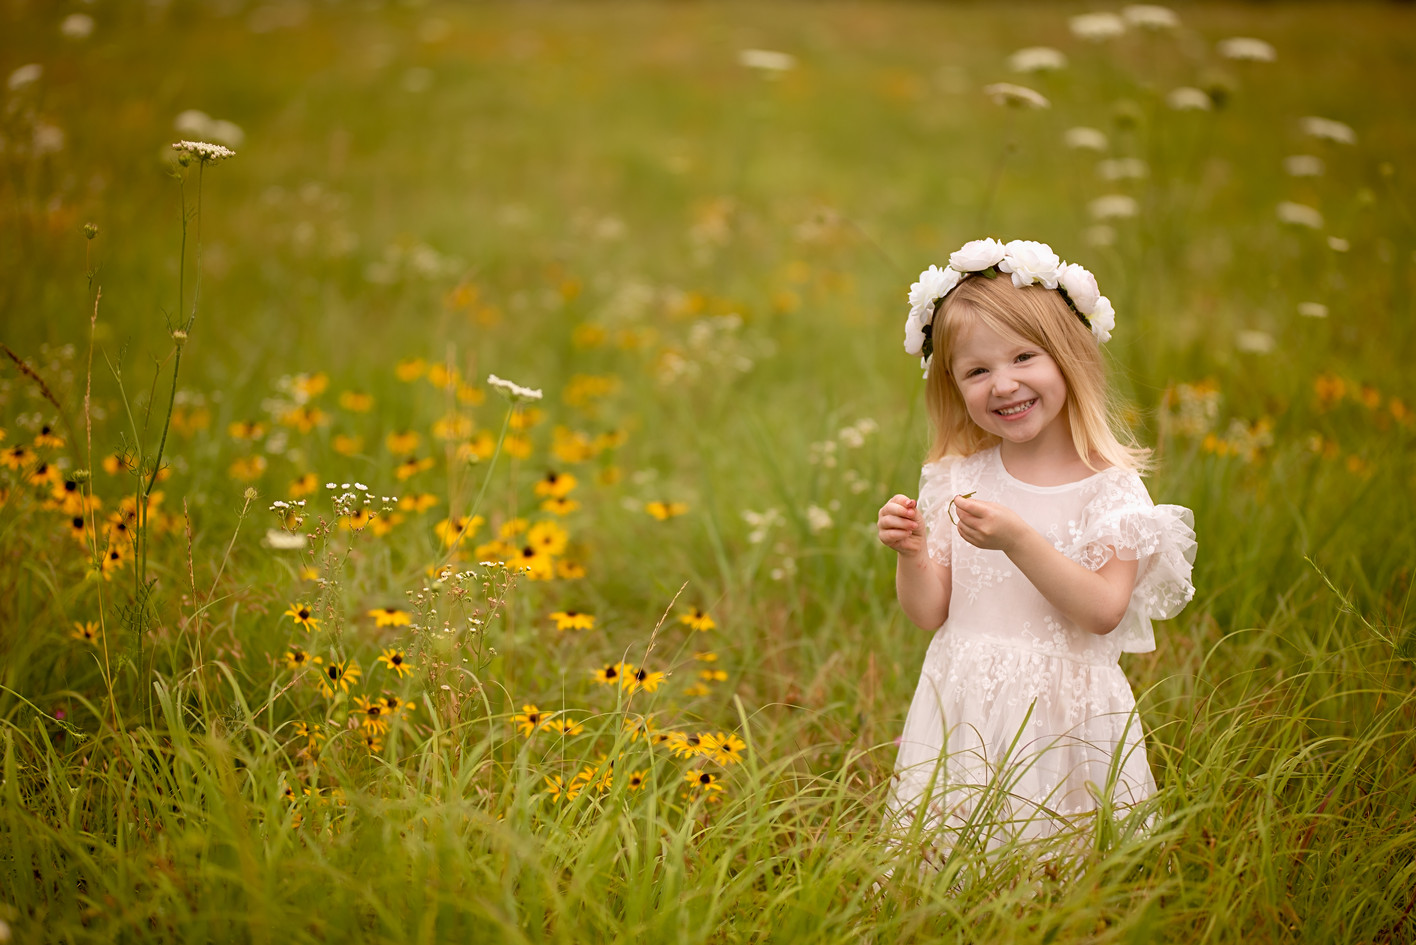 Candid smiling child with a flower crown